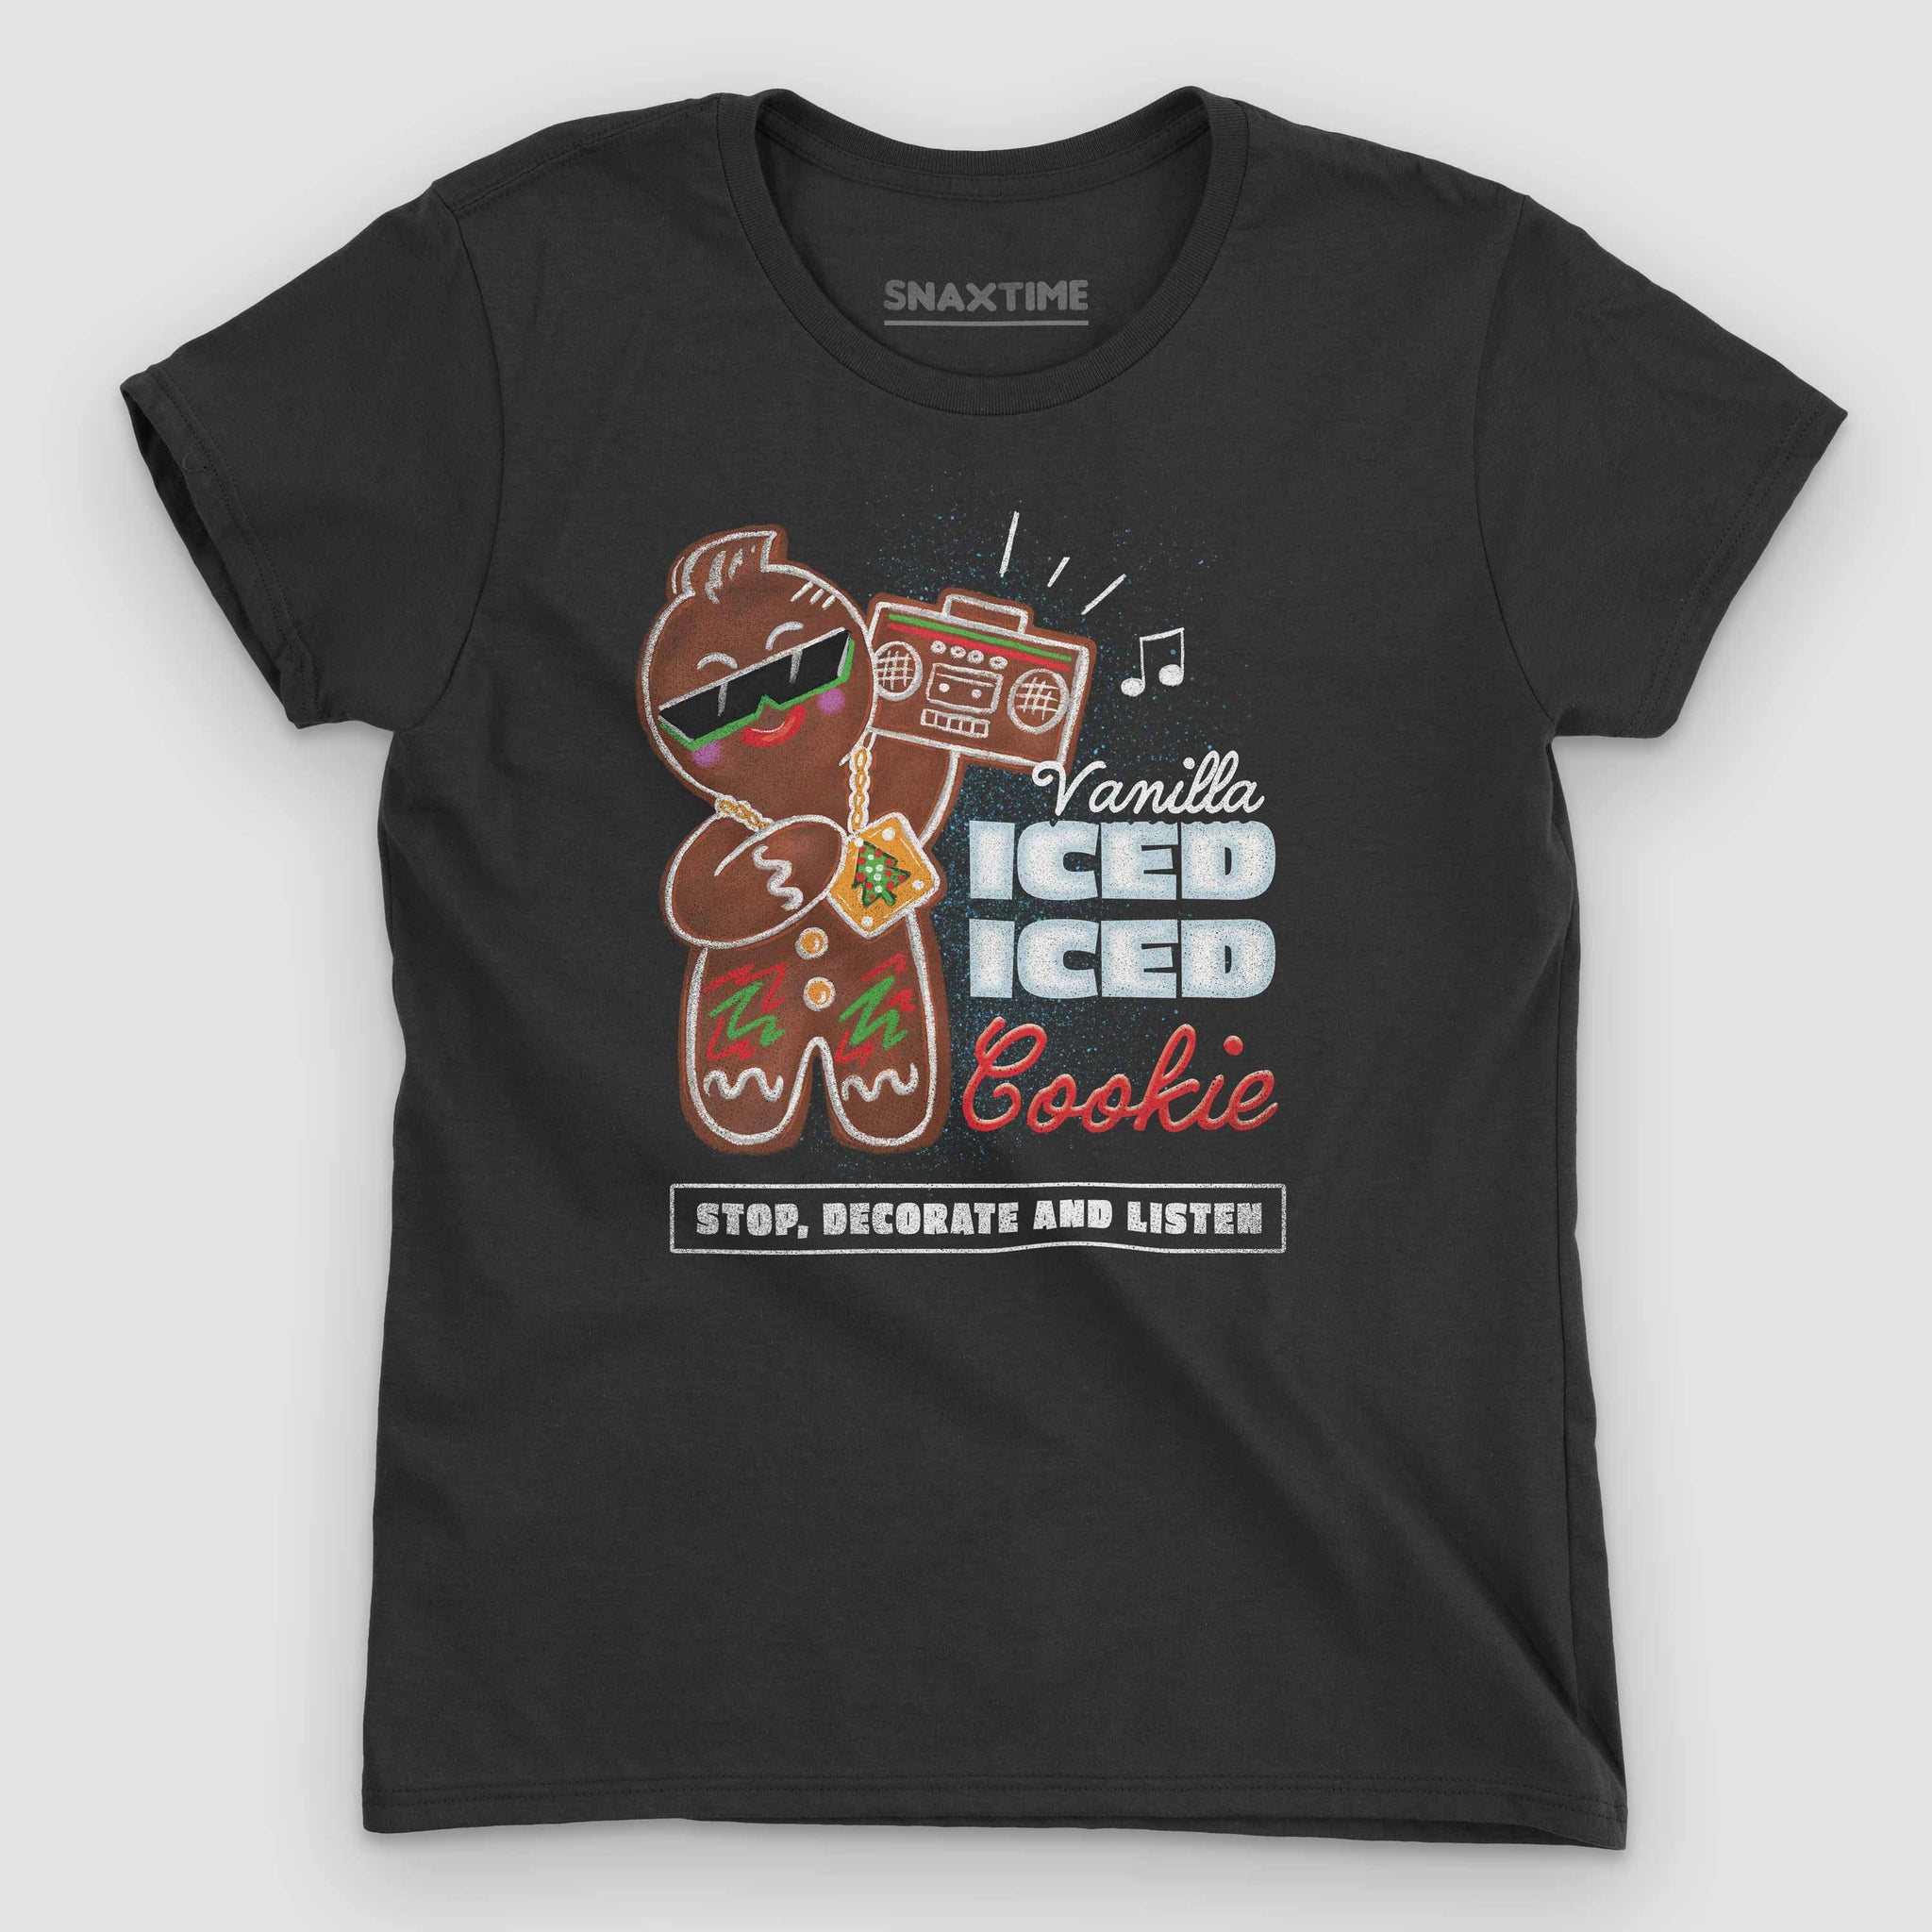 Vanilla Ice-d Gingerbread Cookie Women's Graphic T-Shirt